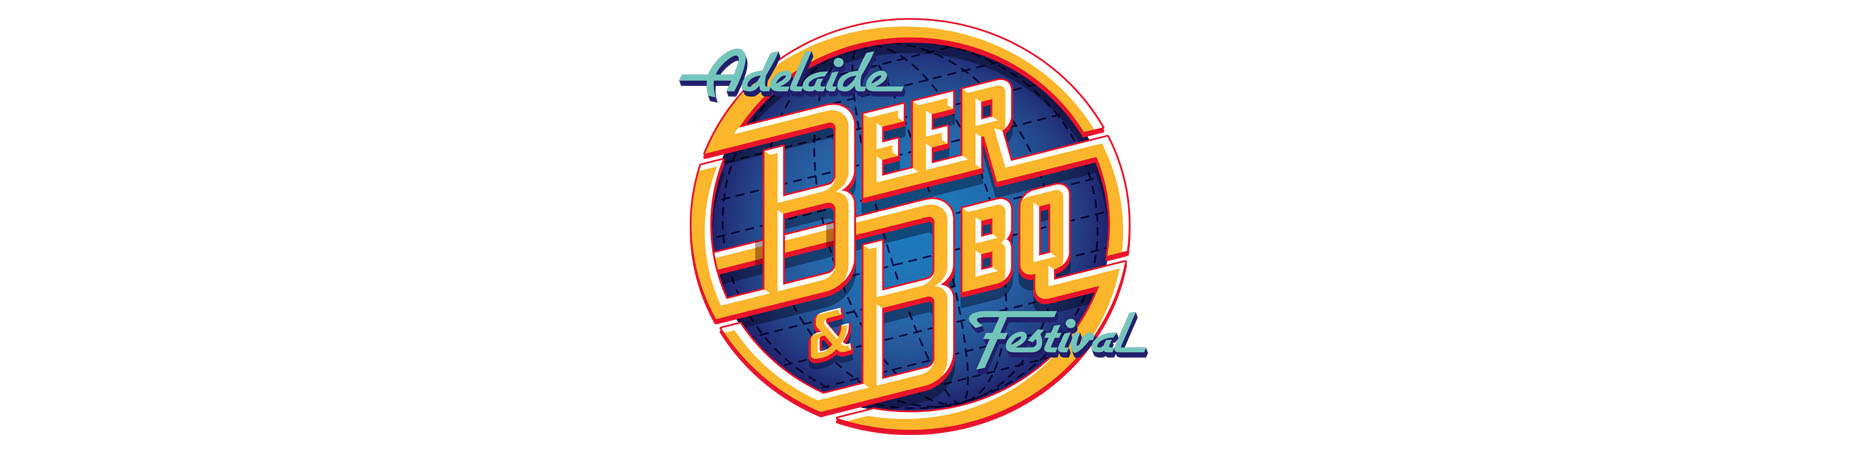 Play alongside Regurgitator at Beer & BBQ Festival!